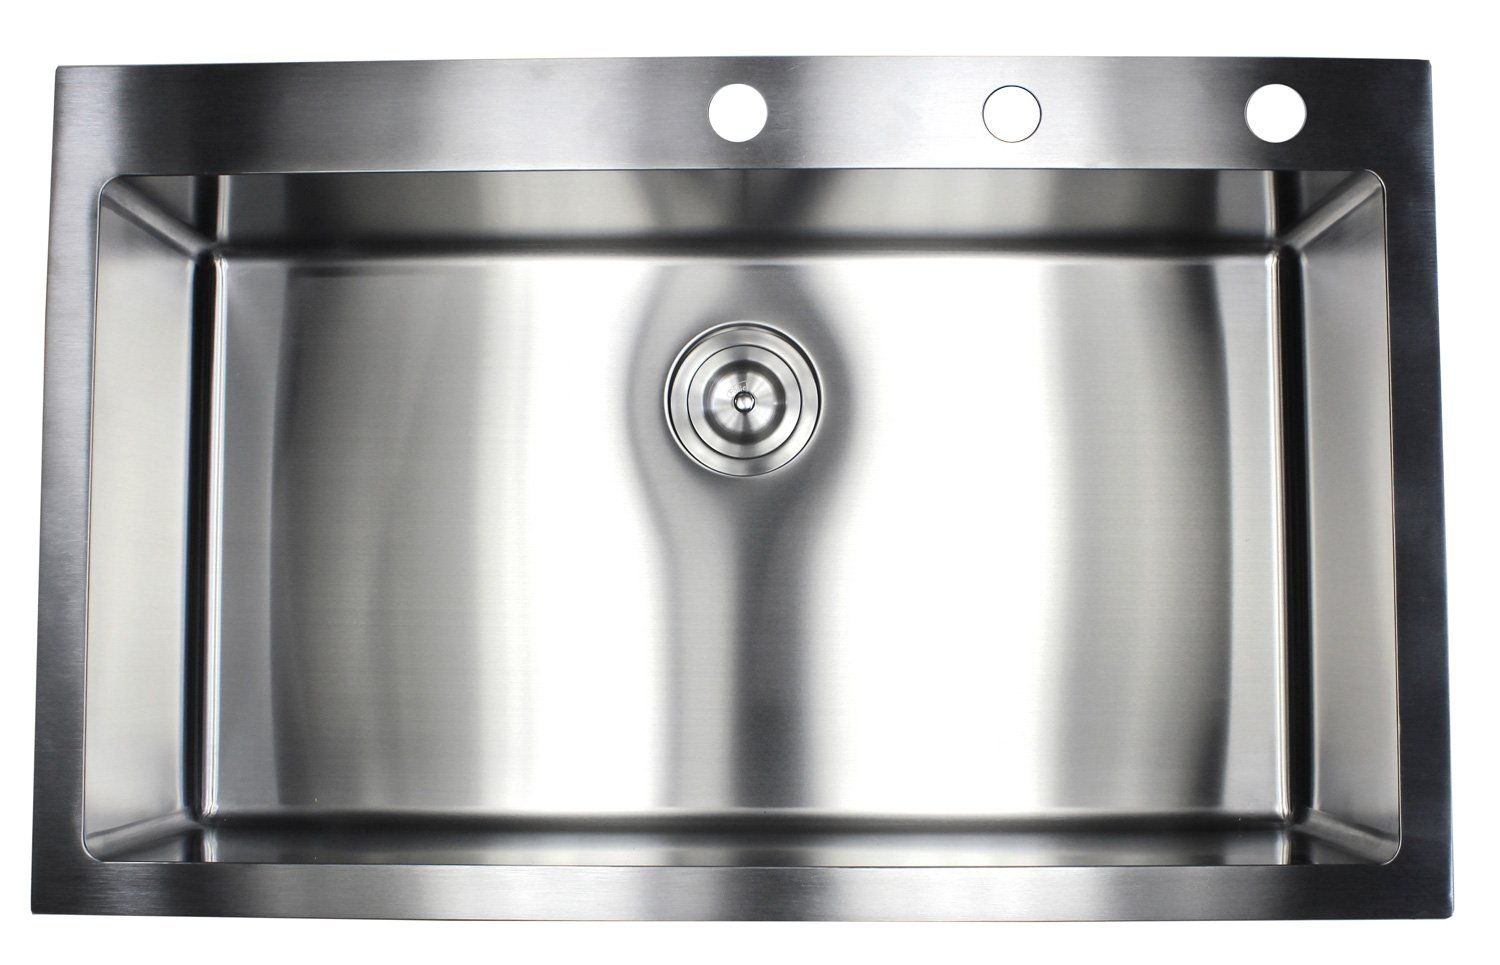 36 Inch Topmount Drop In Stainless Steel Single Bowl Kitchen Sink 15mm Radius Design 16 Gauge with Accessories